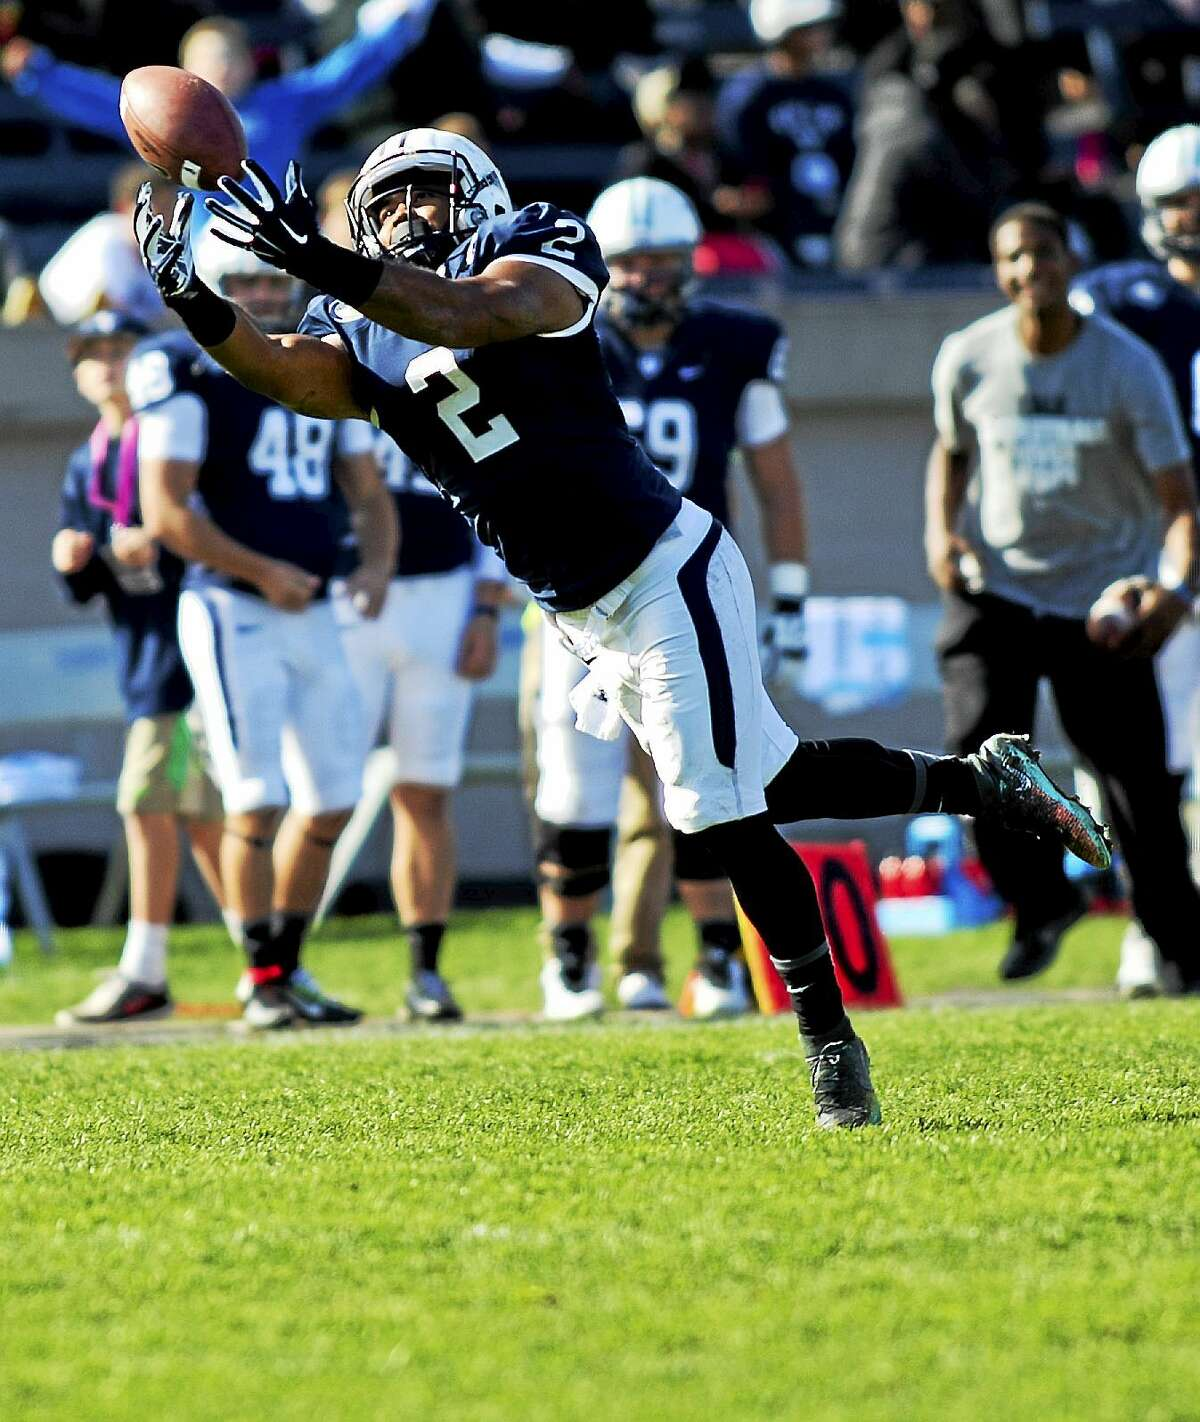 Receiver Deon Randall was one of many Bulldogs who helped spoil East Haven native Al Bagnoli's final game at the Yale Bowl as the Penn coach. The legend will step down following the season.